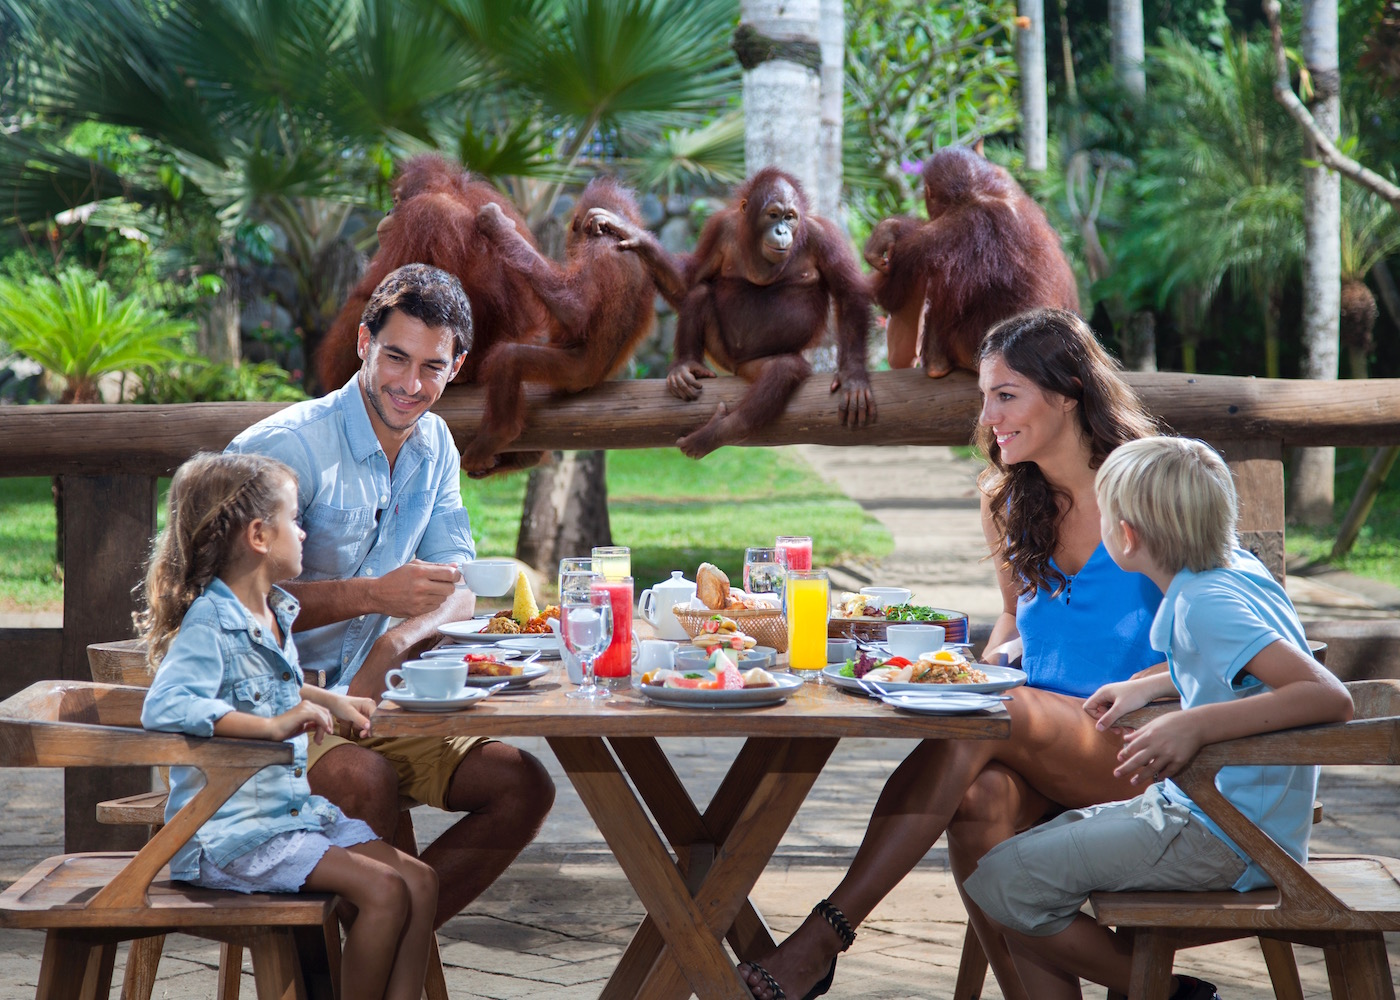 Family breakfast with orangutans at Bali Zoo in Gianyar (near Ubud) in Bali, Indonesia